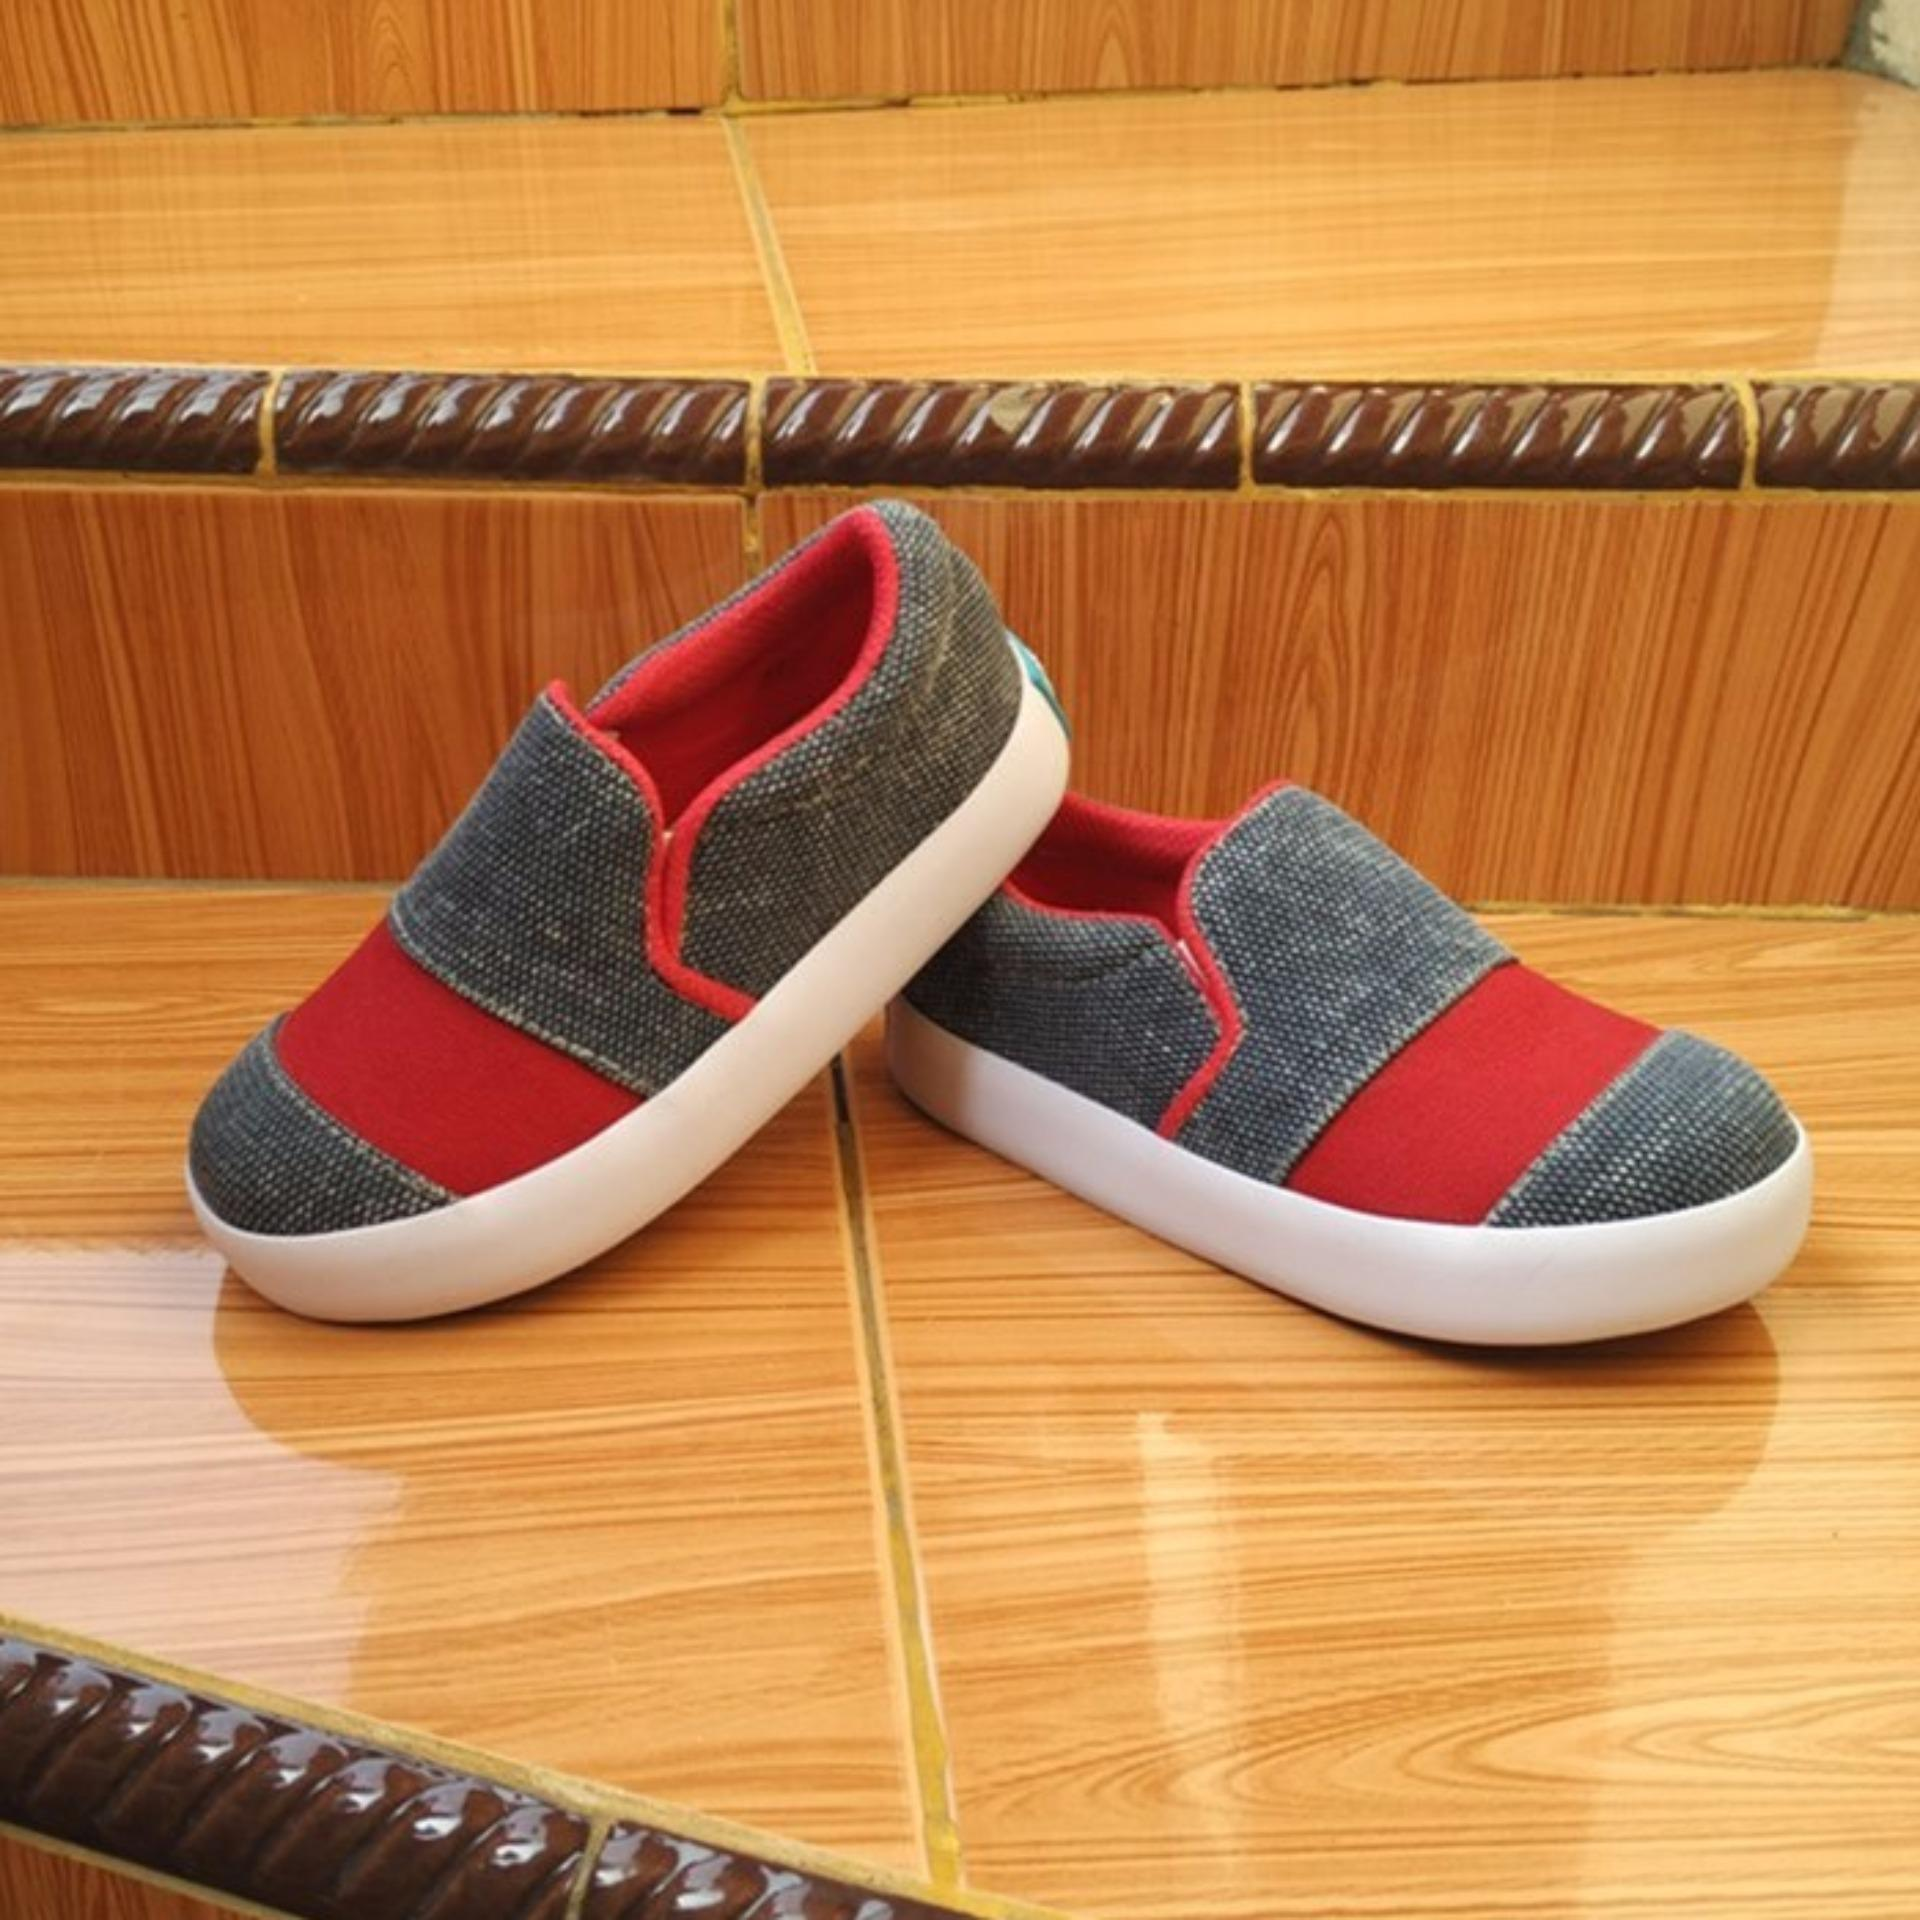 Top 10 Sepatu Anak Slip On Murah Kanvas Casual Trendy By Shuku Online